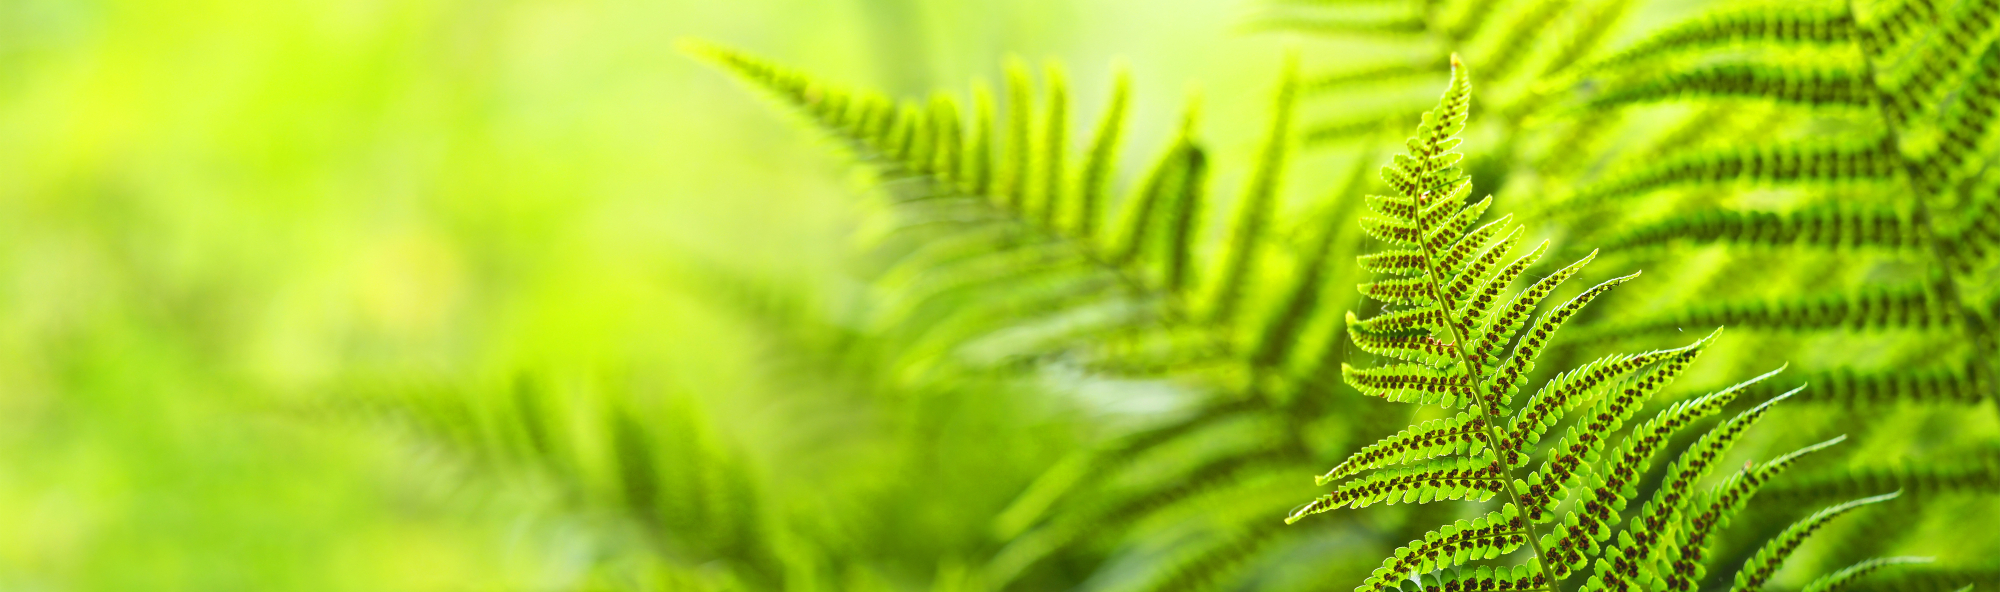 Beautiful ferns leaves, green foliage natural, floral fern background. Polypodiophyta, panoramic view, sunlight